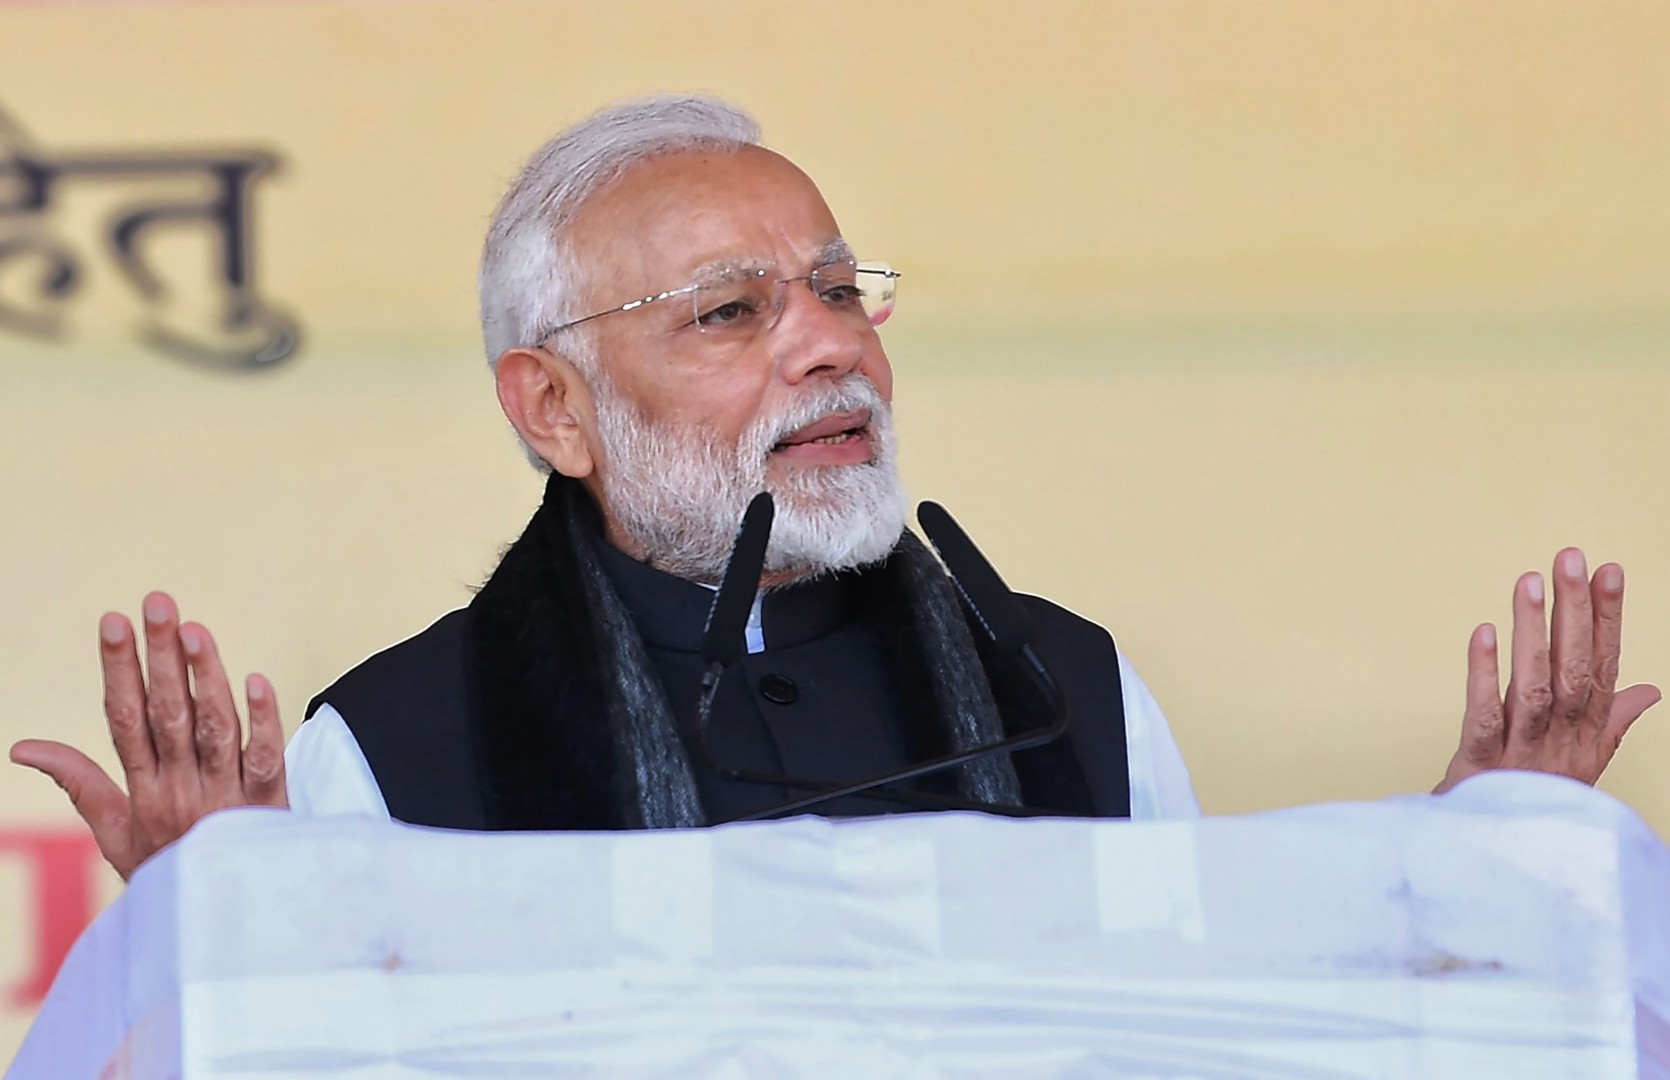 """This handout photograph released by India's Press Information Bureau (PIB) on February 15, 2019 shows Indian Prime Minister Narendra Modi speaking during the inauguration and foundation stone laying ceremony of various development projects in Jhansi, in the Indian state of Uttar Pradesh. (Photo by Handout / AFP) / RESTRICTED TO EDITORIAL USE - MANDATORY CREDIT """"AFP PHOTO / PIB"""" - NO MARKETING NO ADVERTISING CAMPAIGNS - DISTRIBUTED AS A SERVICE TO CLIENTS ---"""